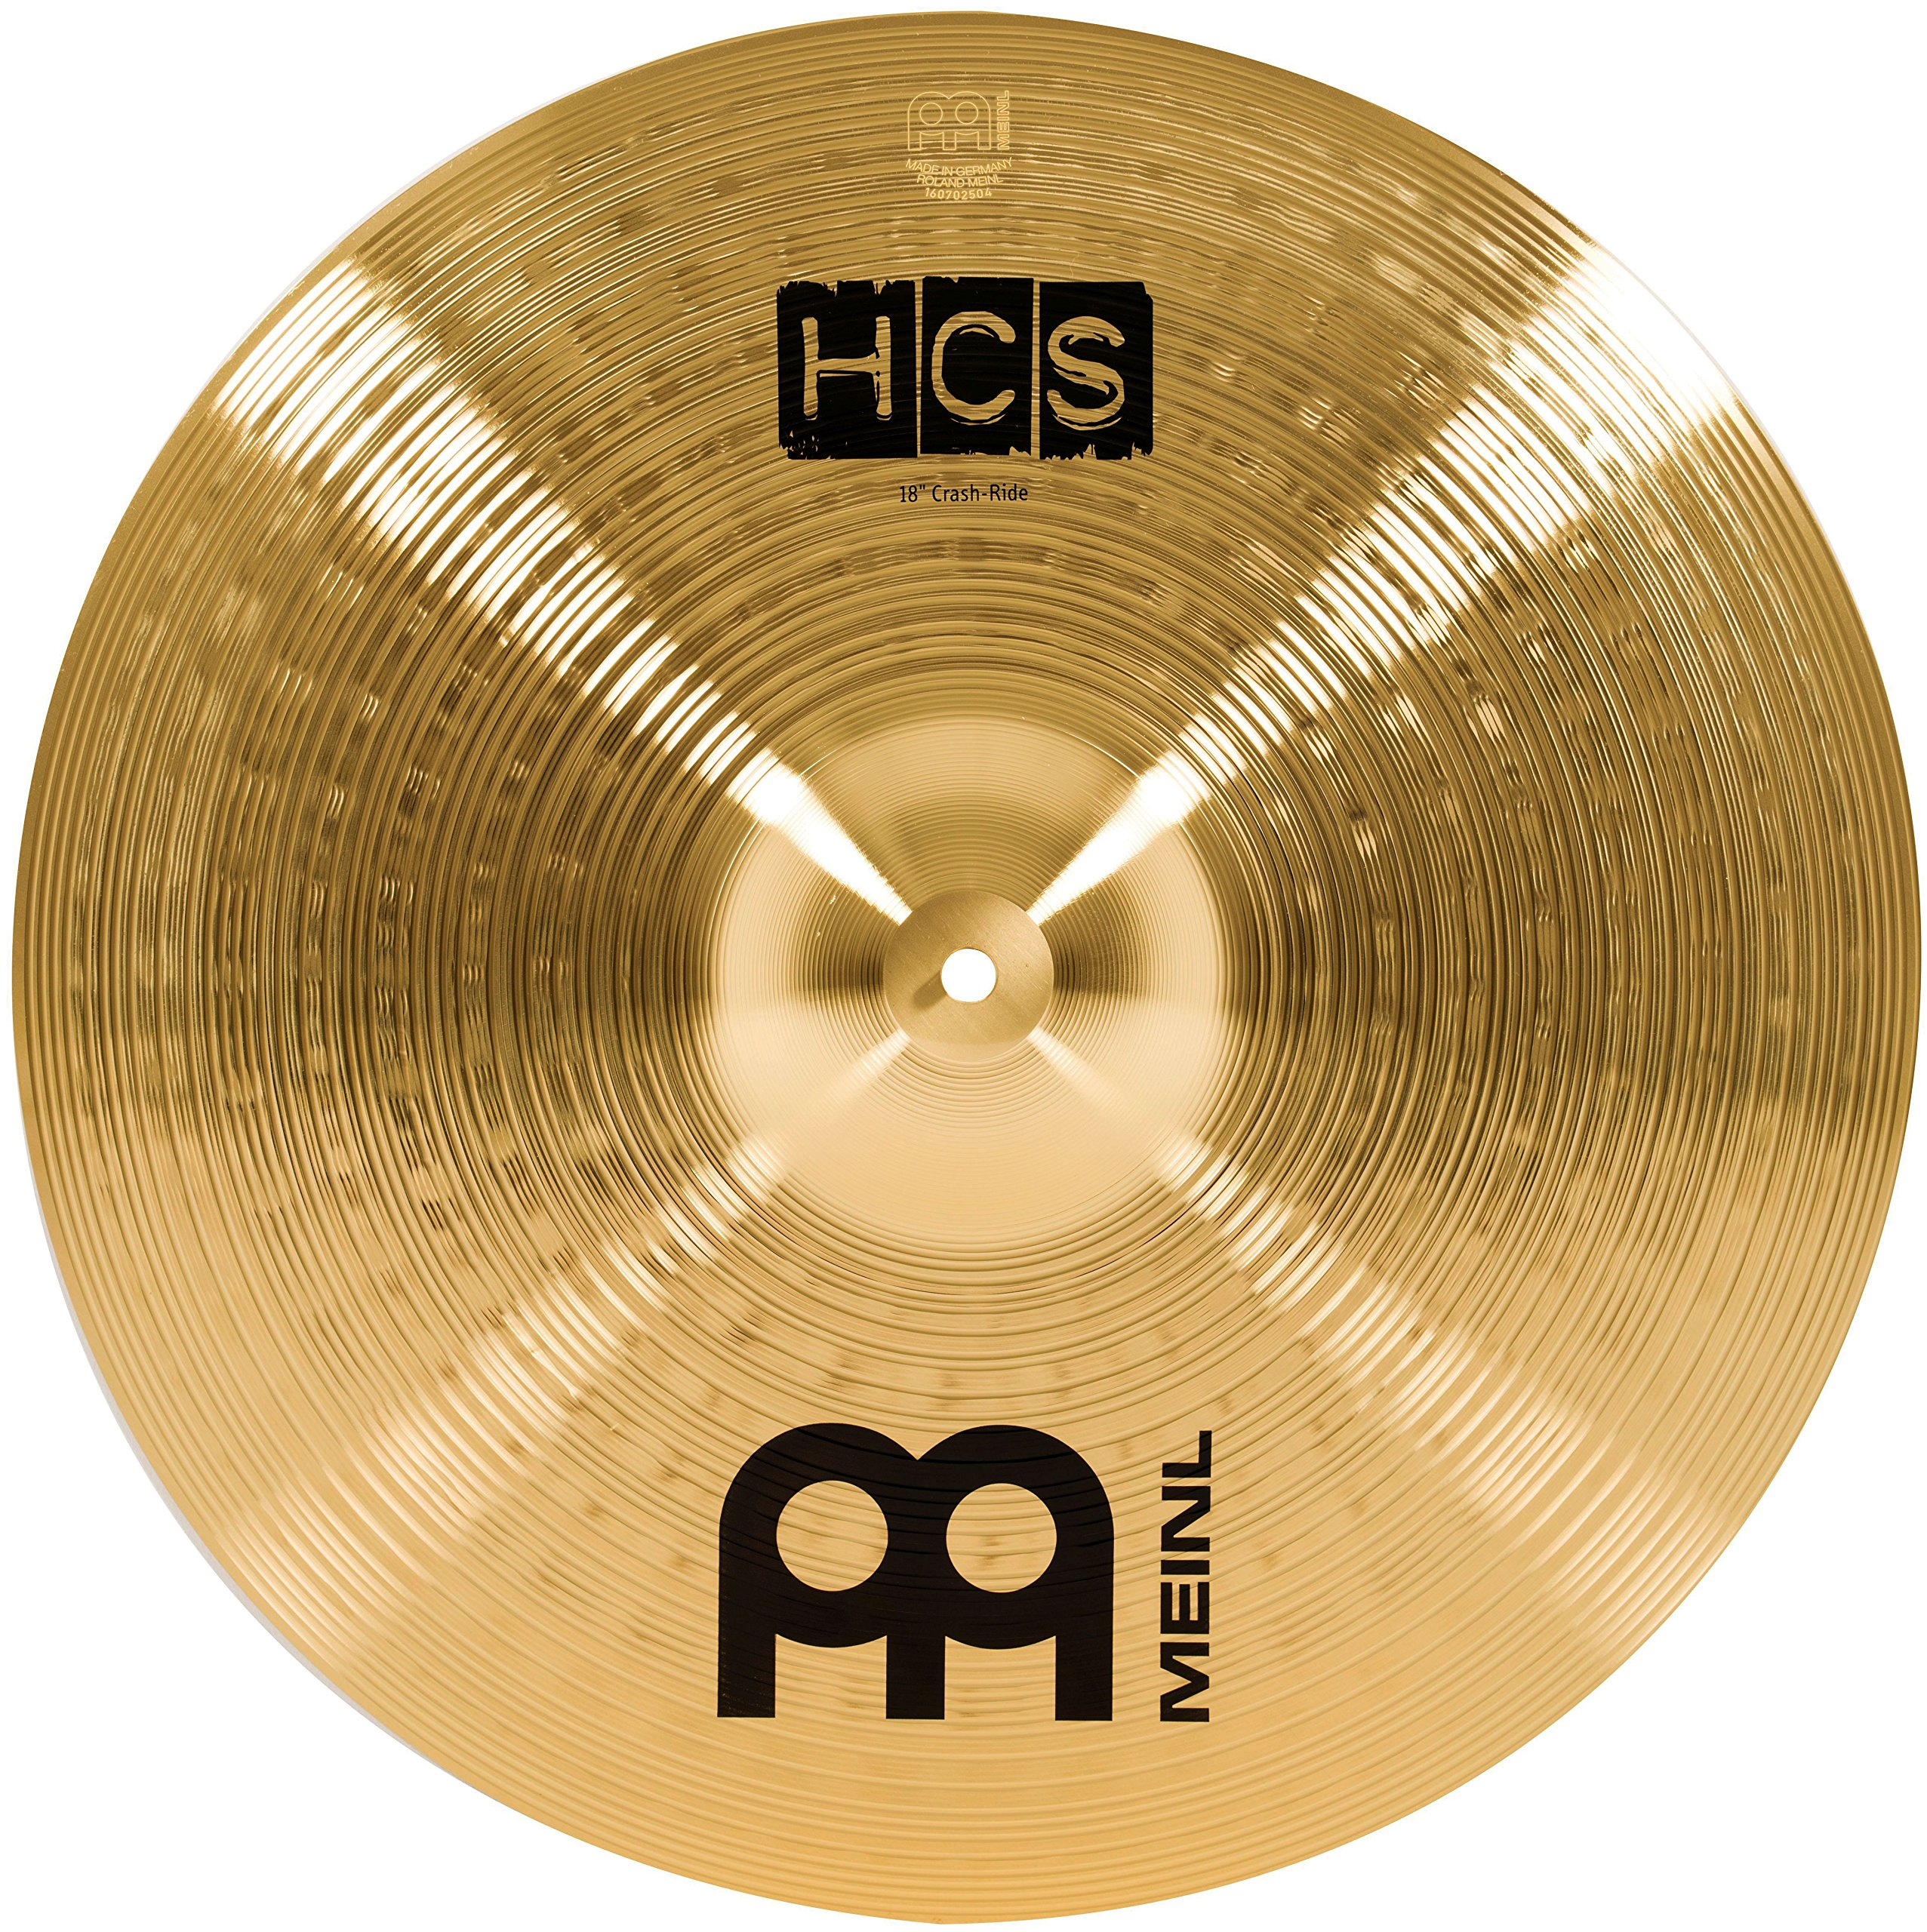 Meinl 18'' Crash/Ride Cymbal - HCS Traditional Finish Brass for Drum Set, Made in Germany, 2-YEAR WARRANTY (HCS18CR) by Meinl Cymbals